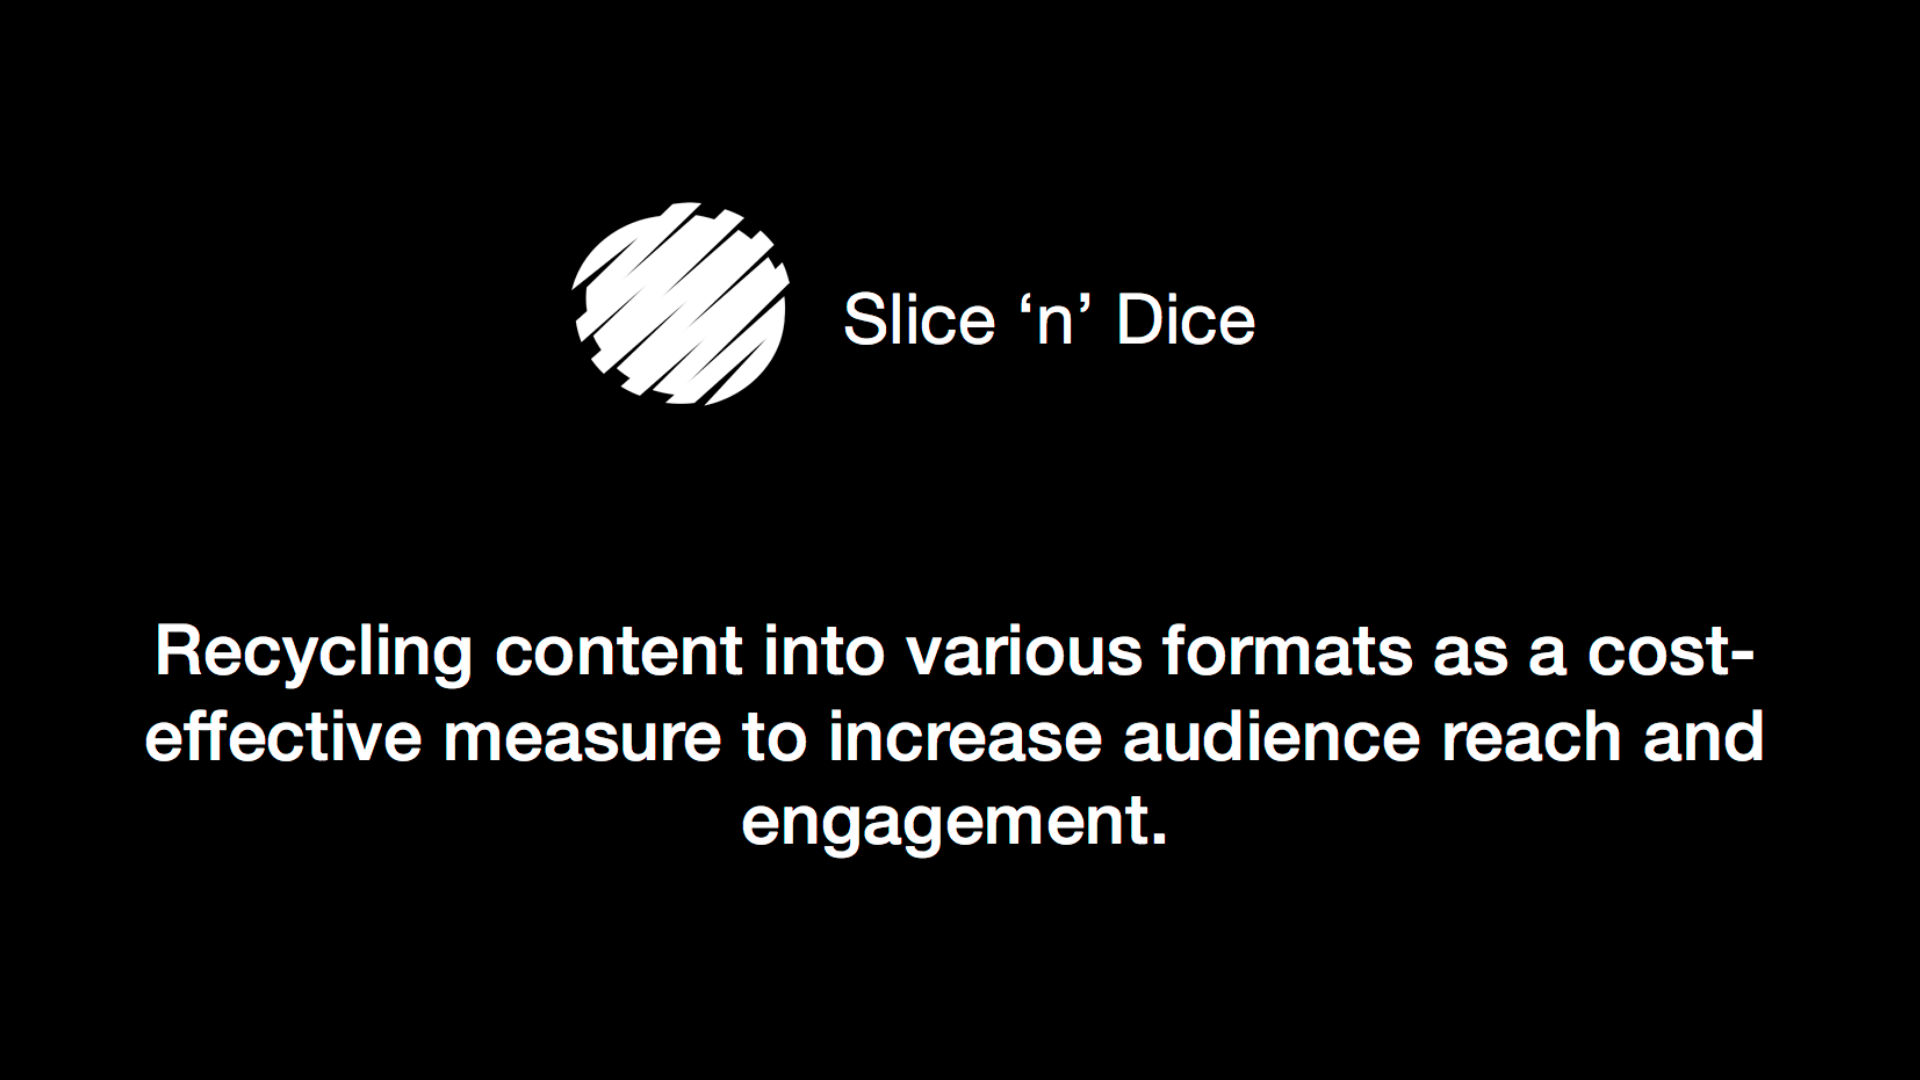 Slice 'n' Dice Your Video Content